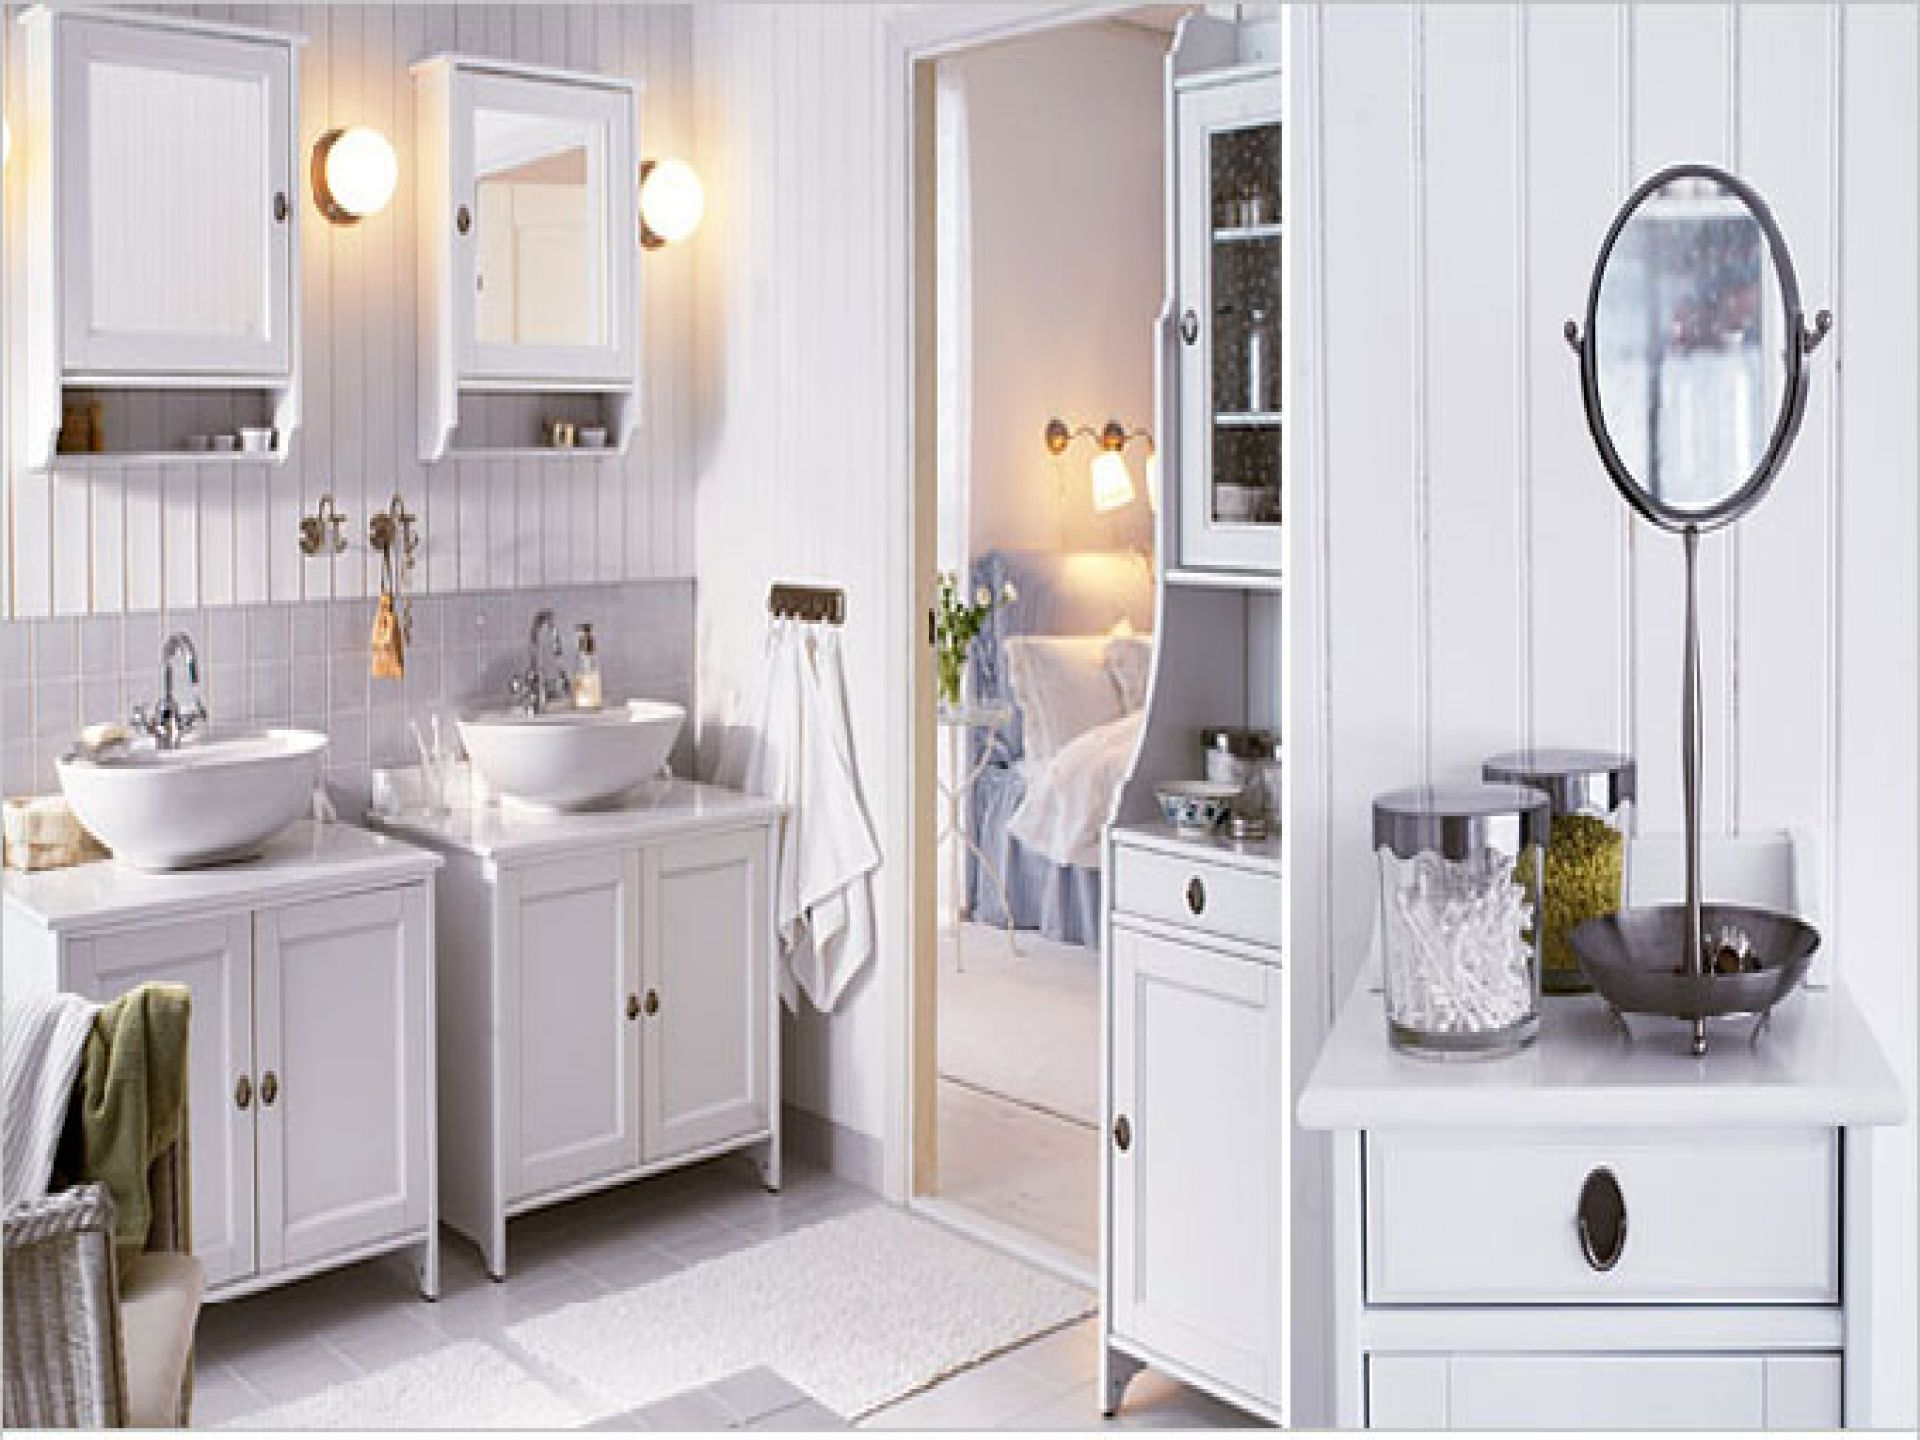 picturesque white bathroom vanities canada. Furniture  Beautiful Sweet And Stylish IKEA All White Bathroom Interior Design With Twin Vanities Cabinet Set Also Wood Wall Panels Drawing of Ikea Bath Invades Every with Dignity